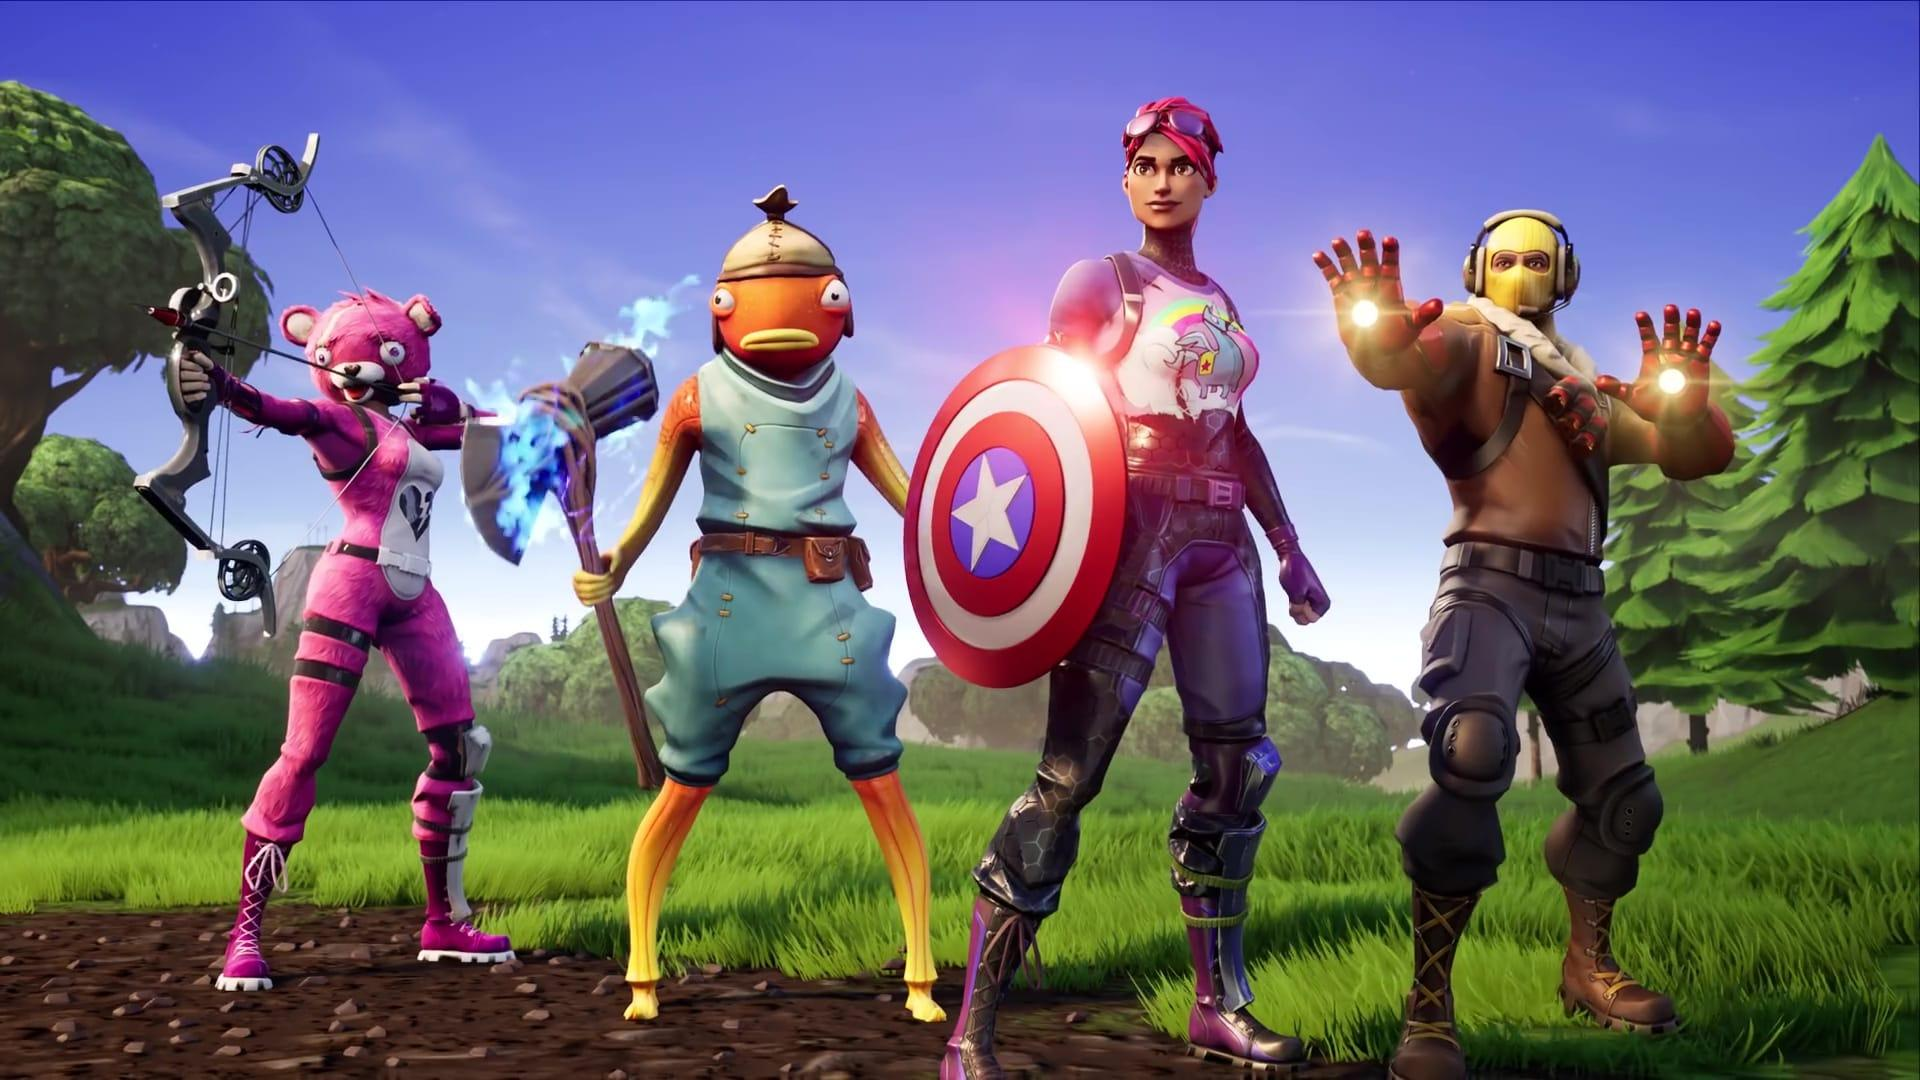 How To Play New Thanos Mode In Fortnite Fortnite Lets You Fight Thanos With Avengers Weapons Engadget